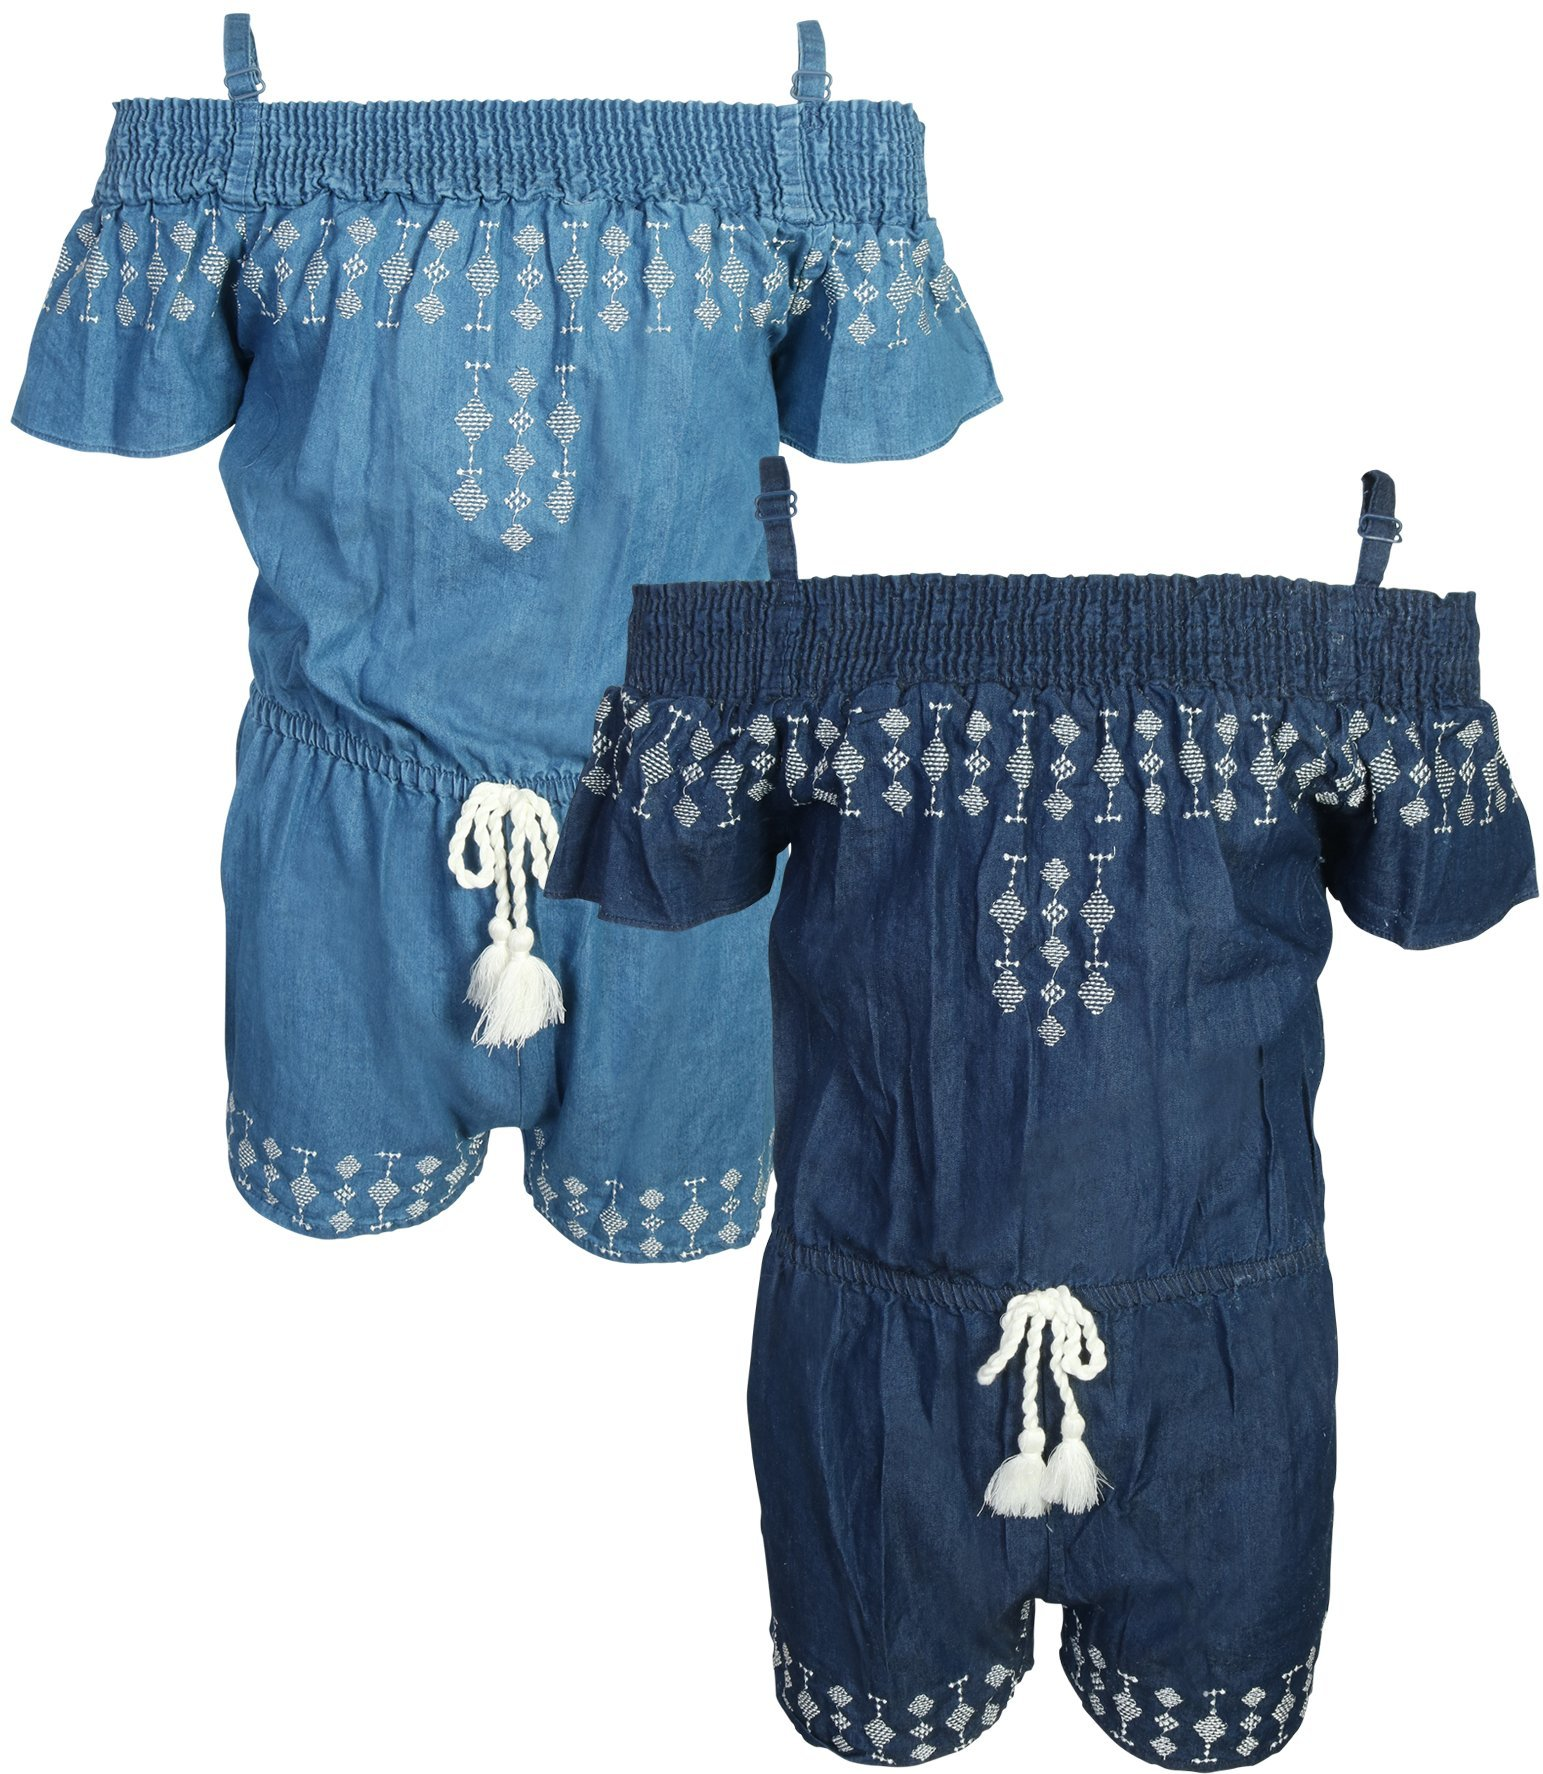 dollhouse Girl's Spring/Summer Denim Romper (2 Pack), Off Shoulder, Size 7/8'